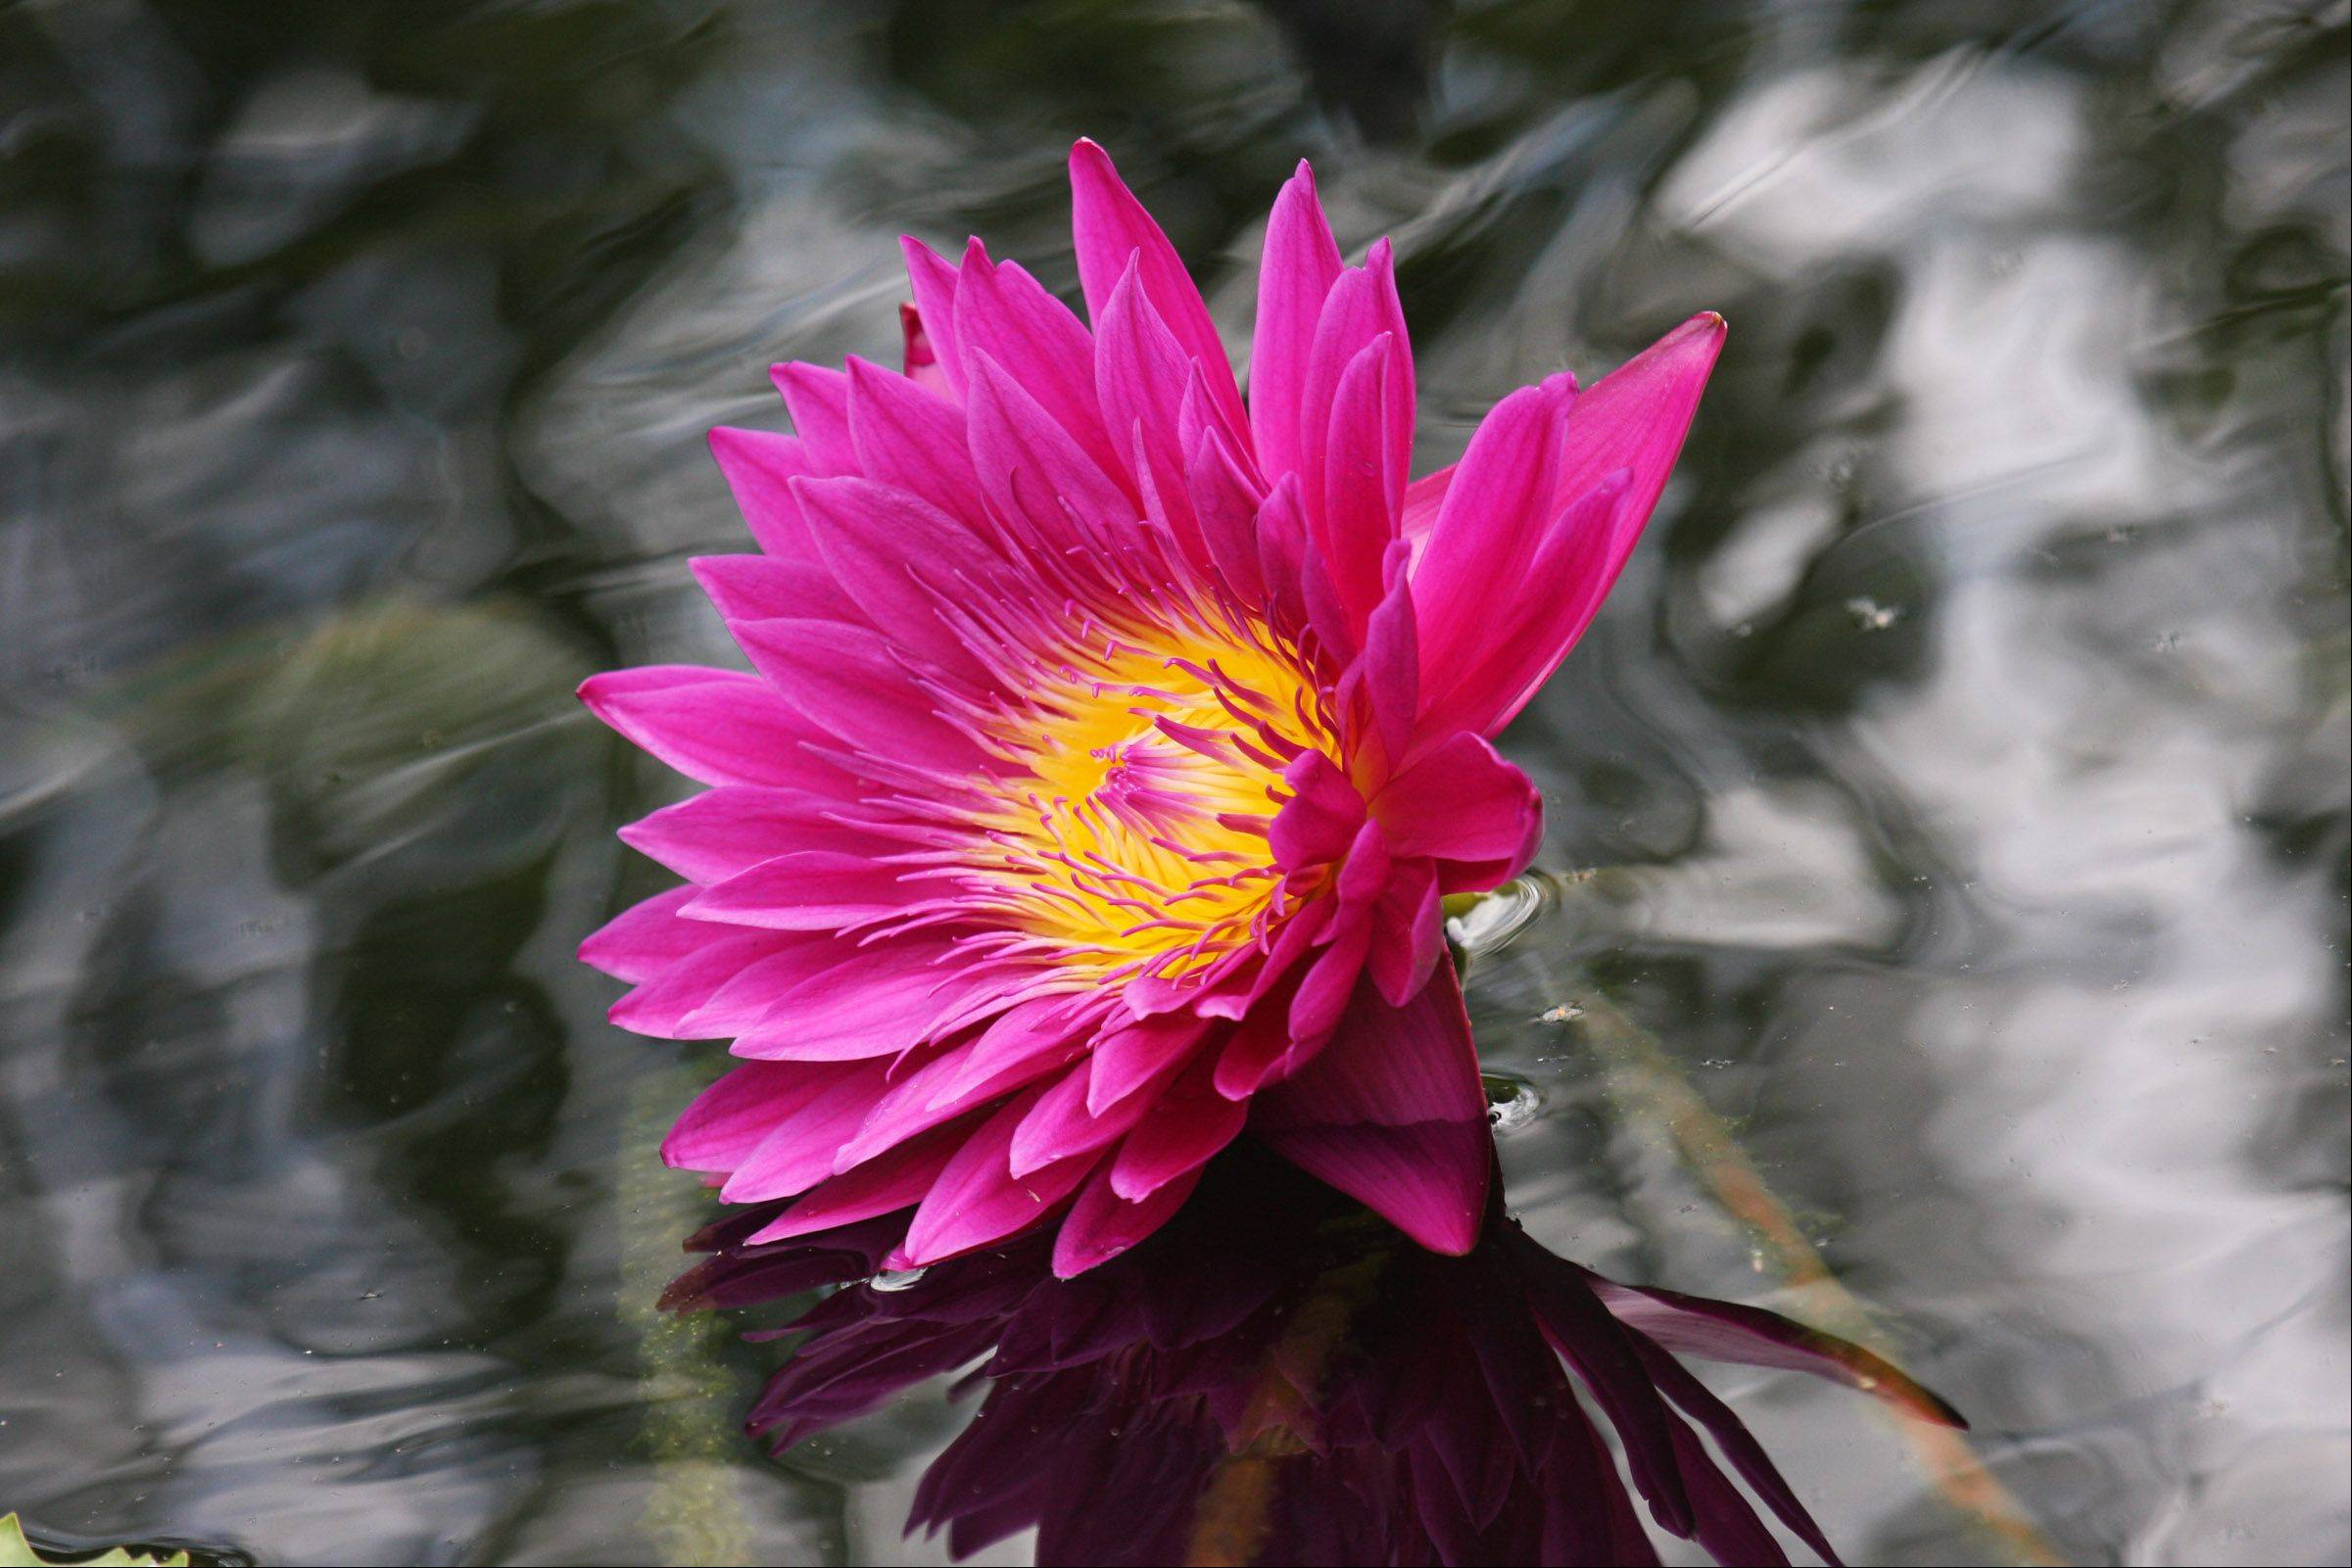 A bright pink water lily with its fiery center reflects against a background of cool water at the Chicago Botanic Gardens last summer.